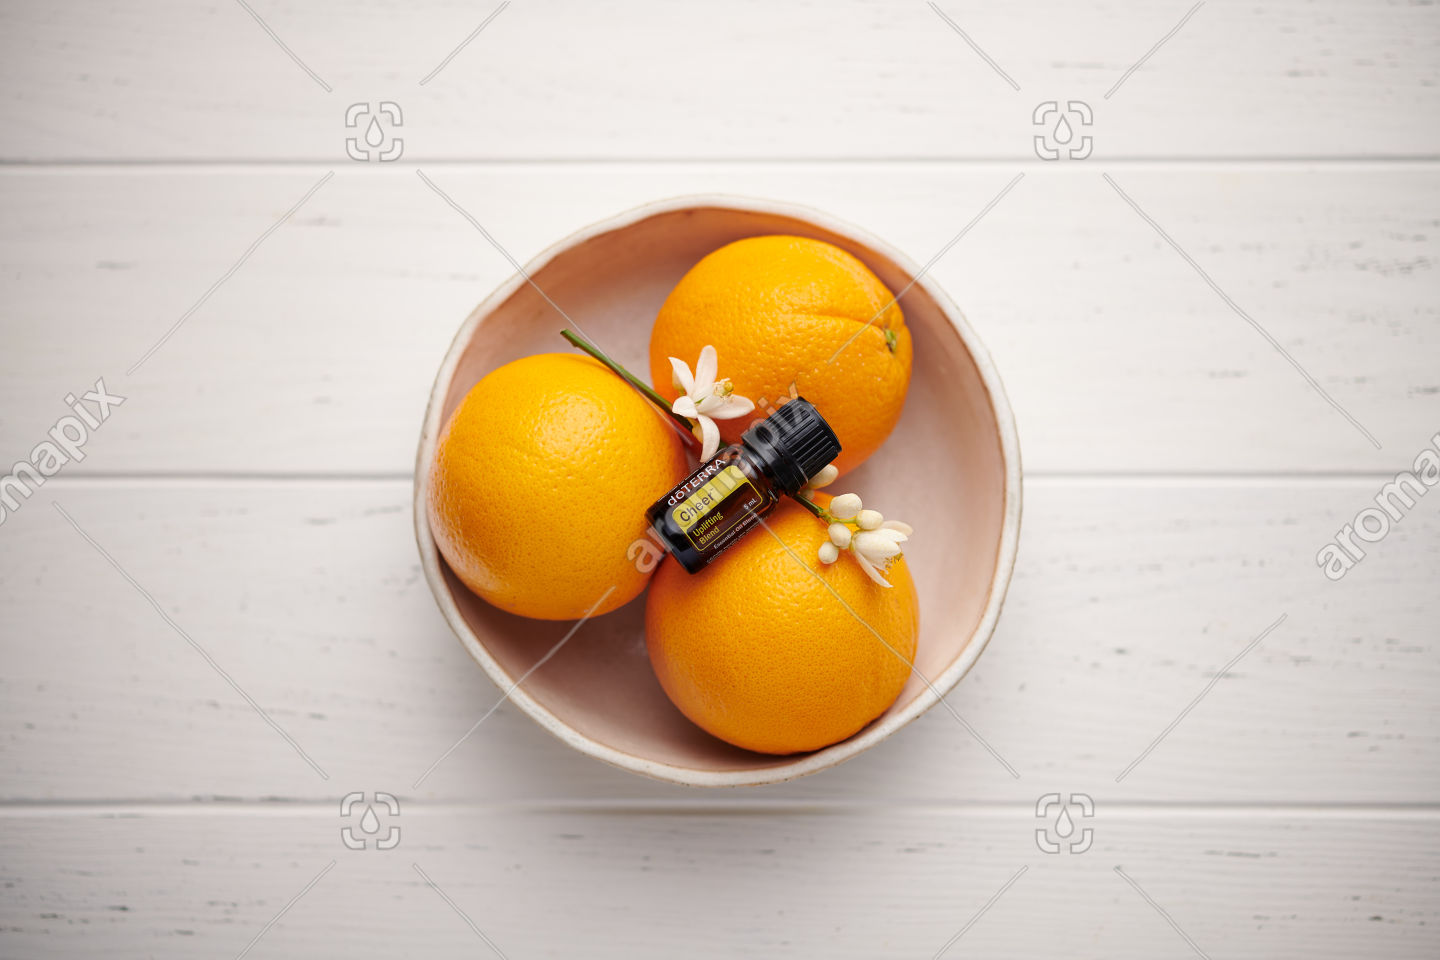 doTERRA Cheer with seville oranges and orange blossoms on white